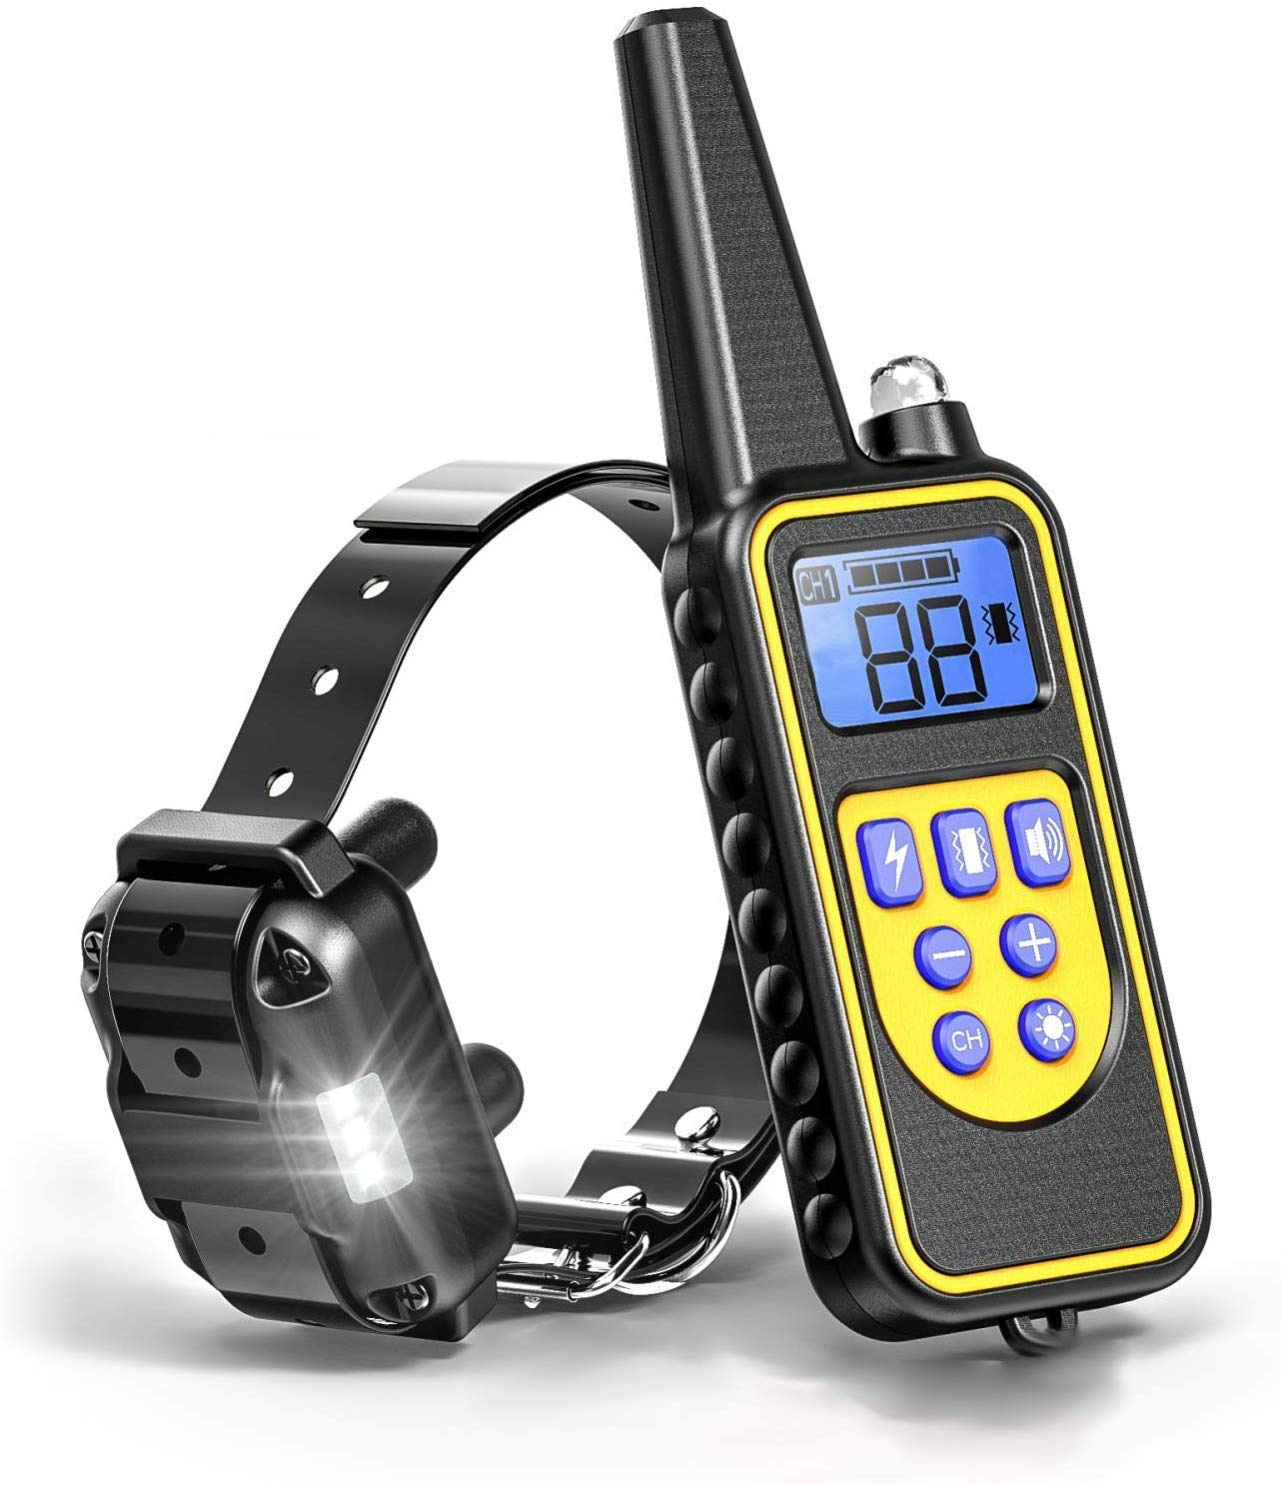 PPTech Dog Shock Collar with Romete 100 Waterproof Dog Training Collar with Beep Vibration Shock LED Light Shock Collar for Small Medium Large Dogs, 2600ft Remote Range, Rechargeable